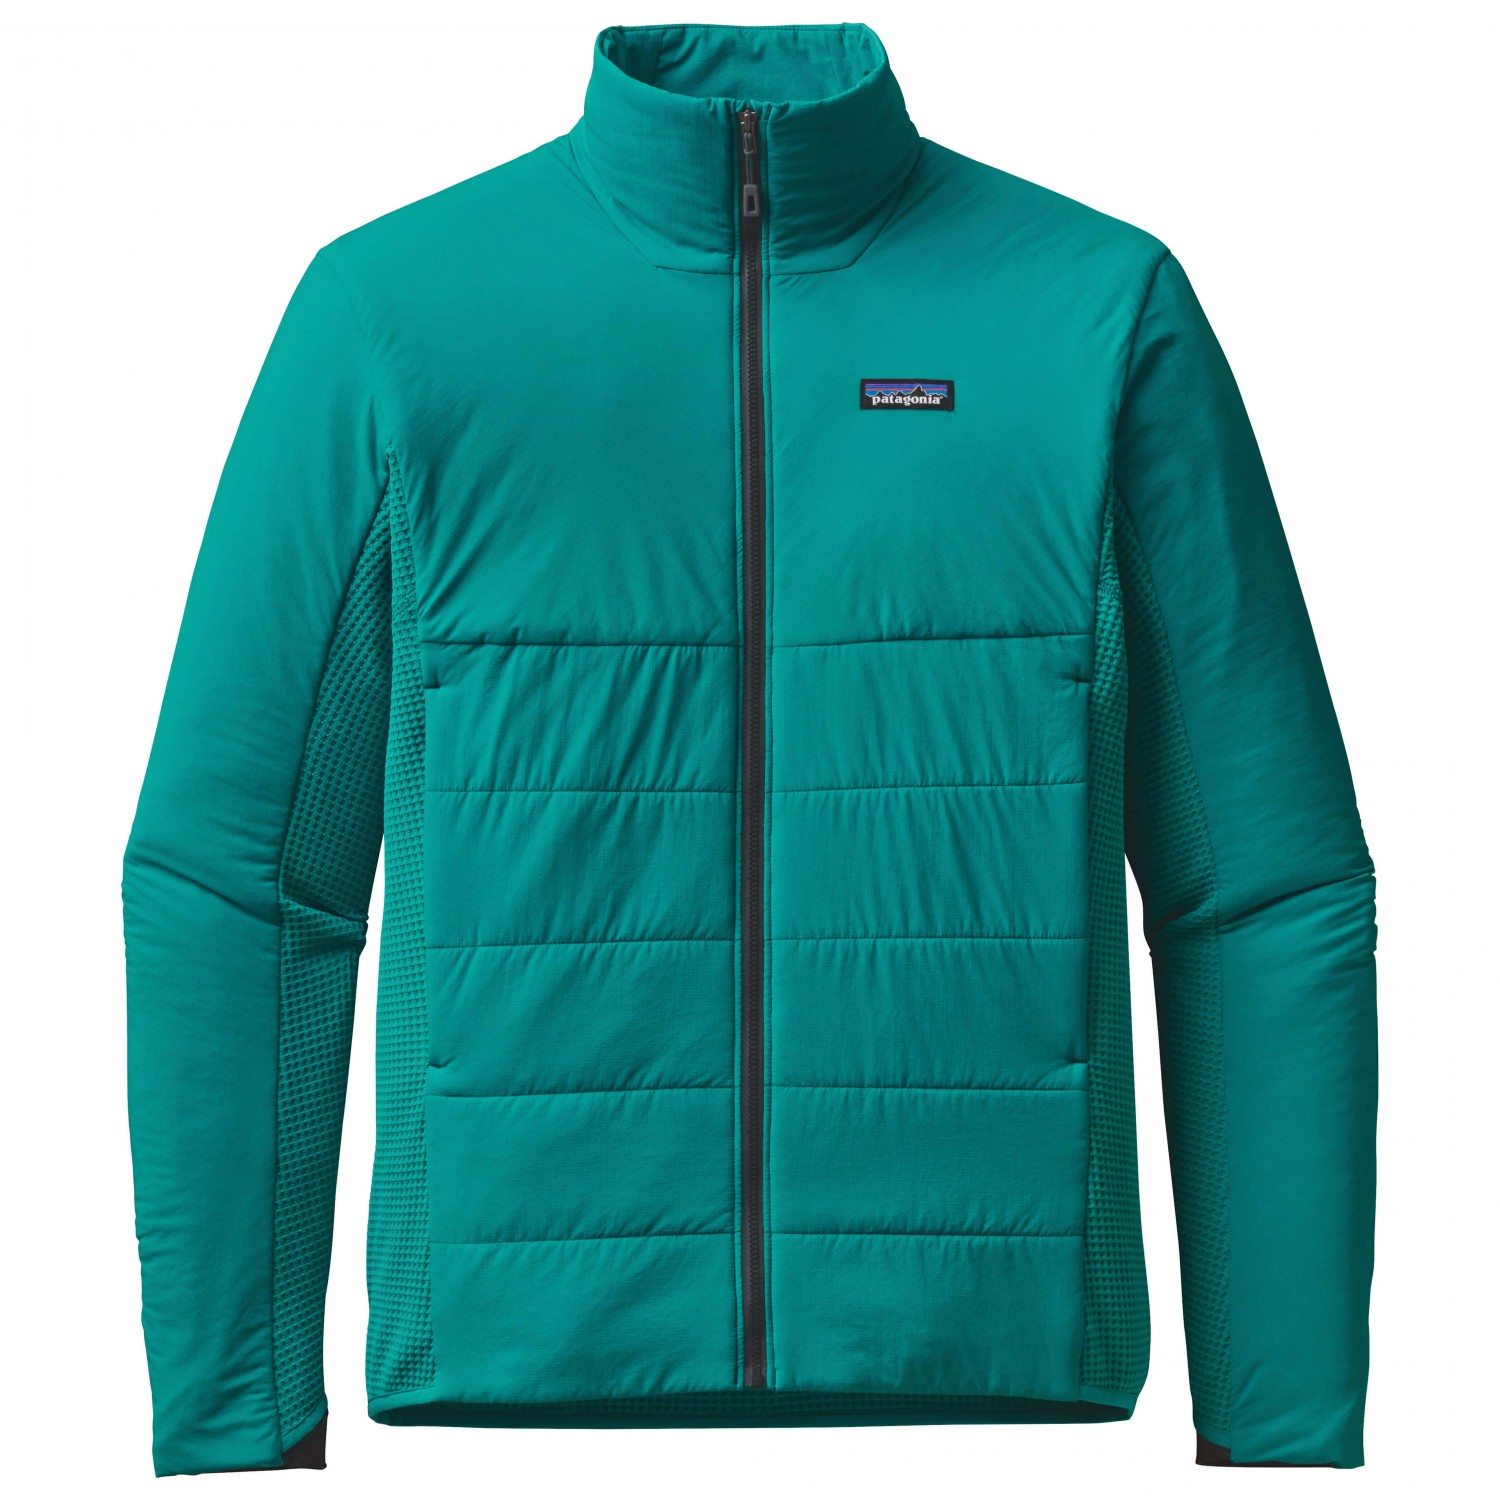 Patagonia Nano Air Light Hybrid Jacket Synthetic Jacket